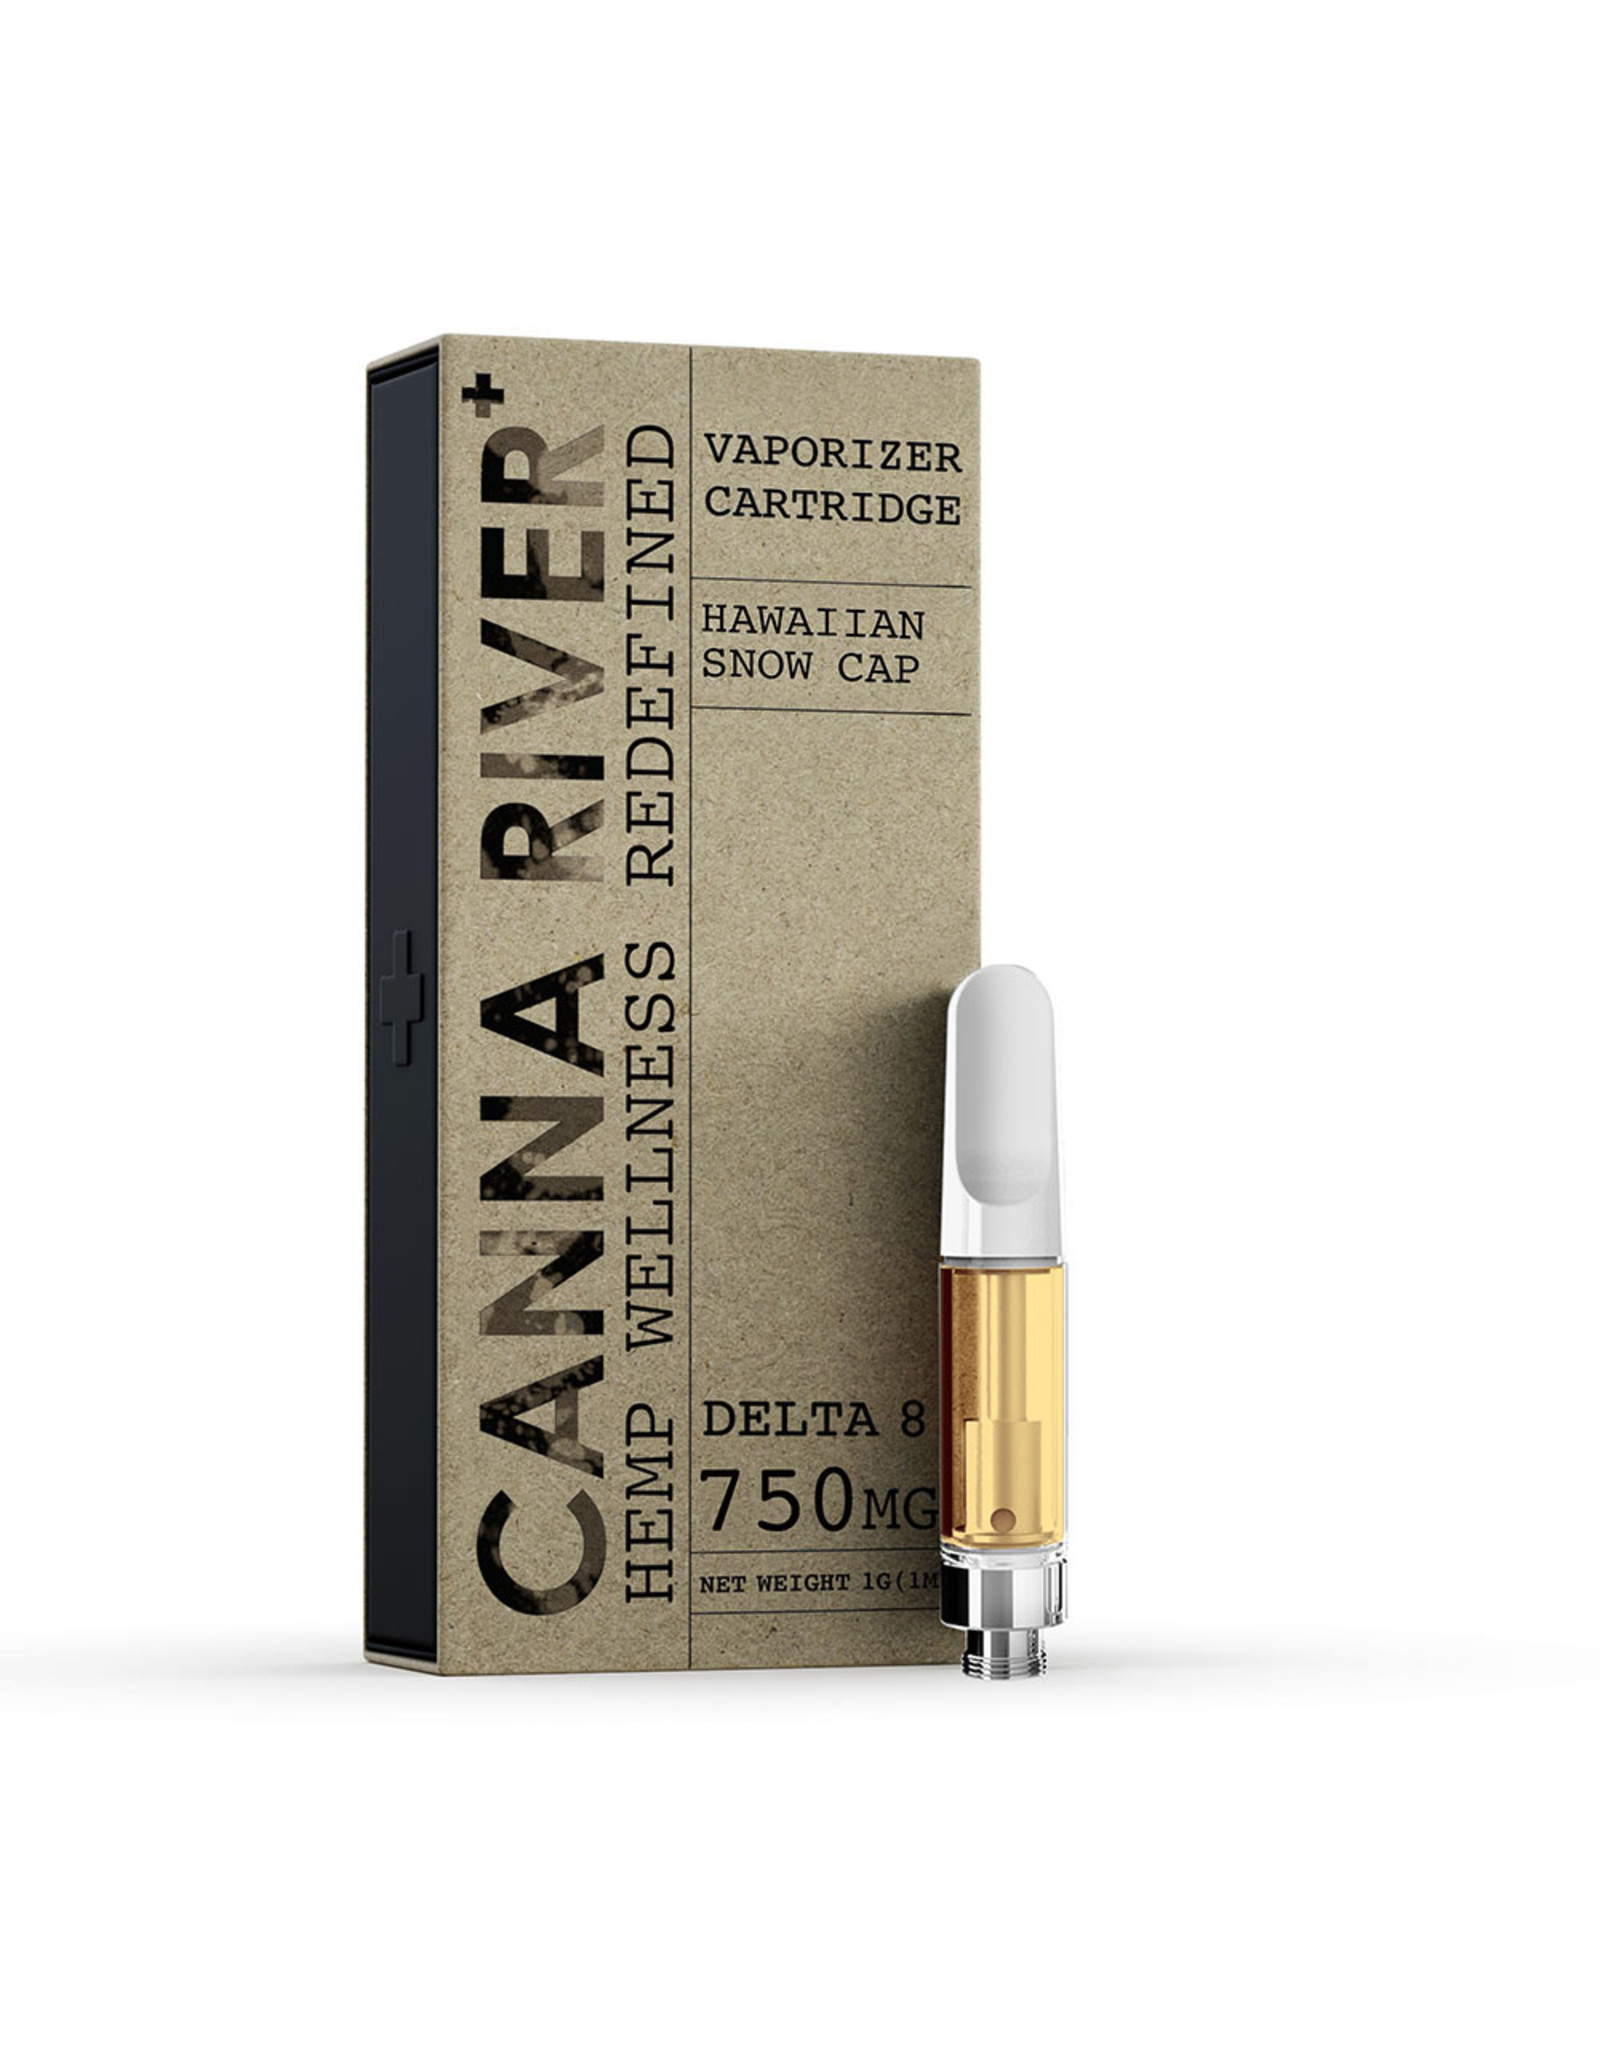 Canna River Canna River Delta 8 Hawaiian Snow Cap Cartridge 750mg